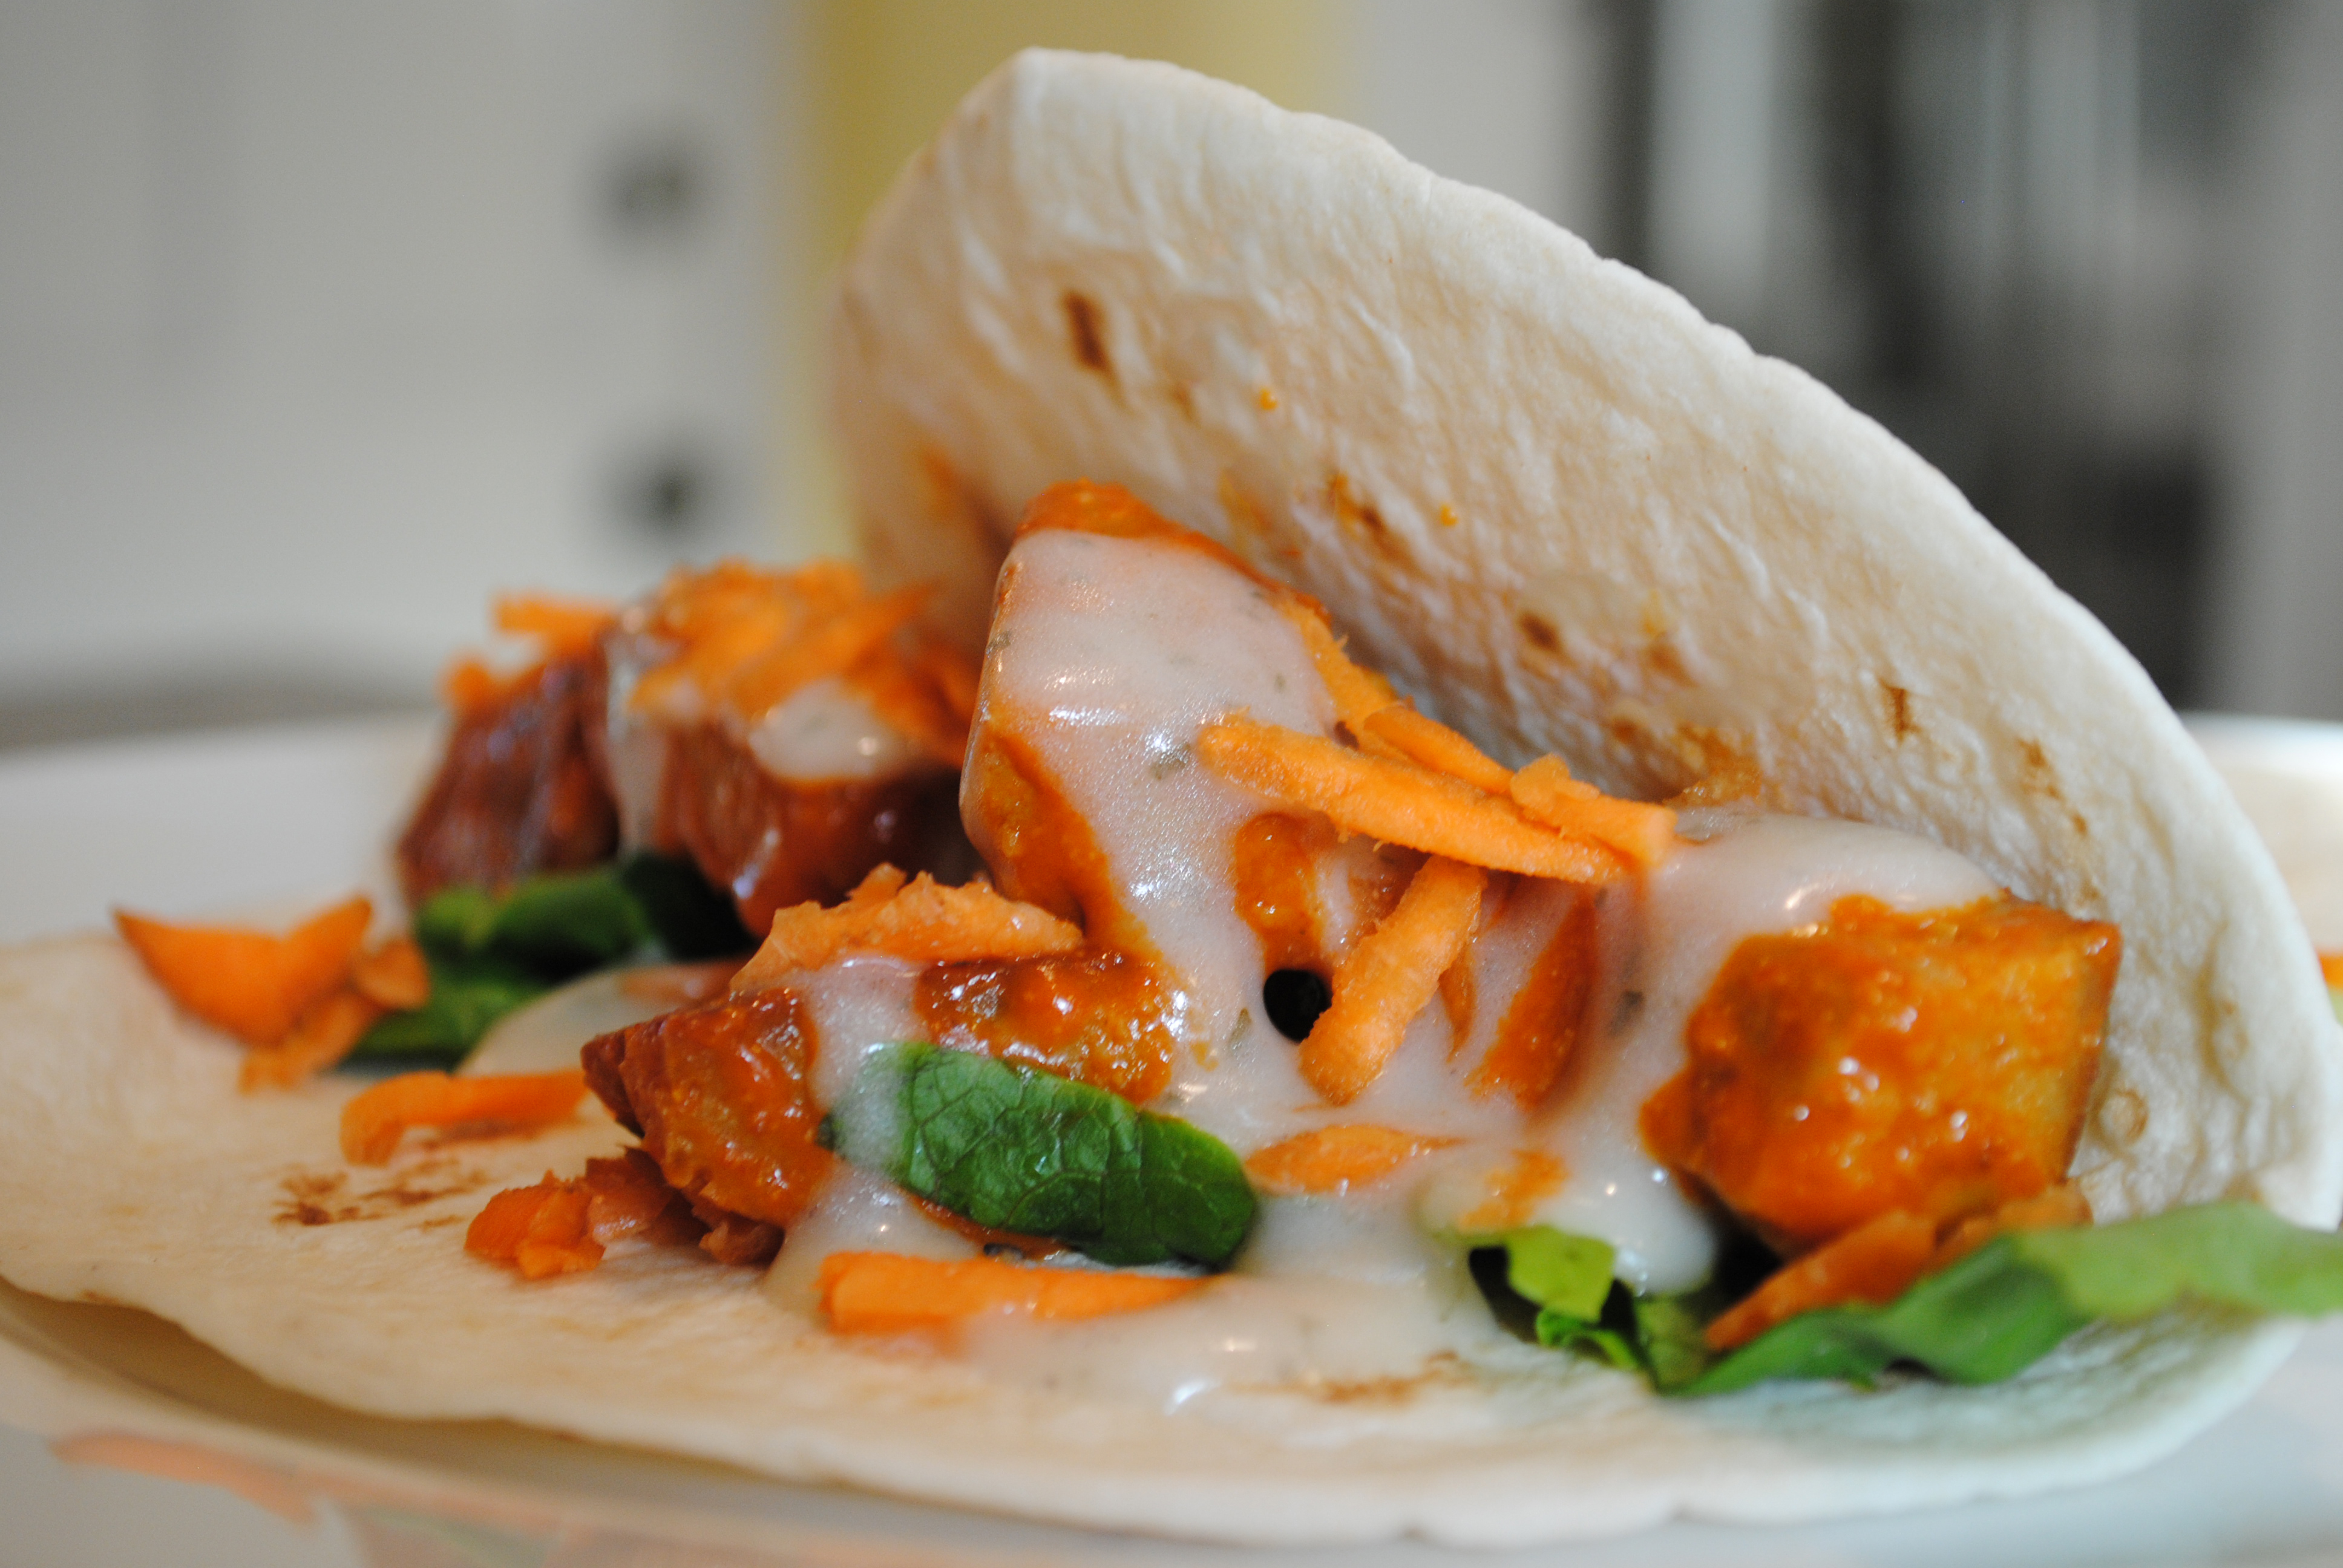 Vegan Buffalo Wing Tacos with Seitan